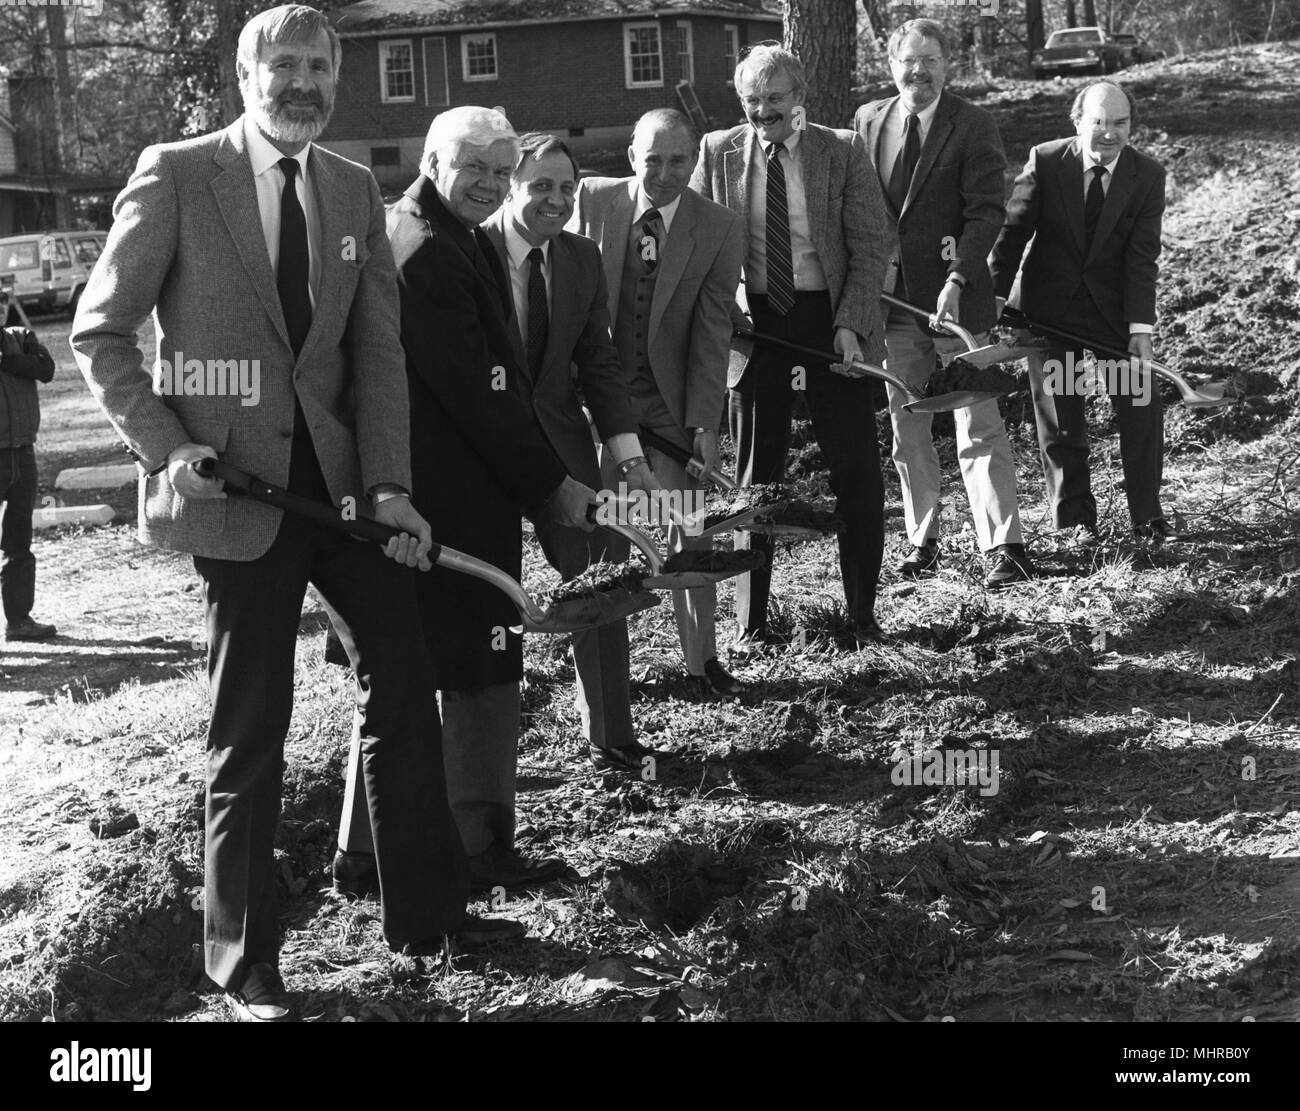 Centers for Disease Control (CDC) officials holding shovels, Roybal Campus, Clifton Road, Atlanta, Georgia, 1985. Image courtesy Centers for Disease Control. () - Stock Image